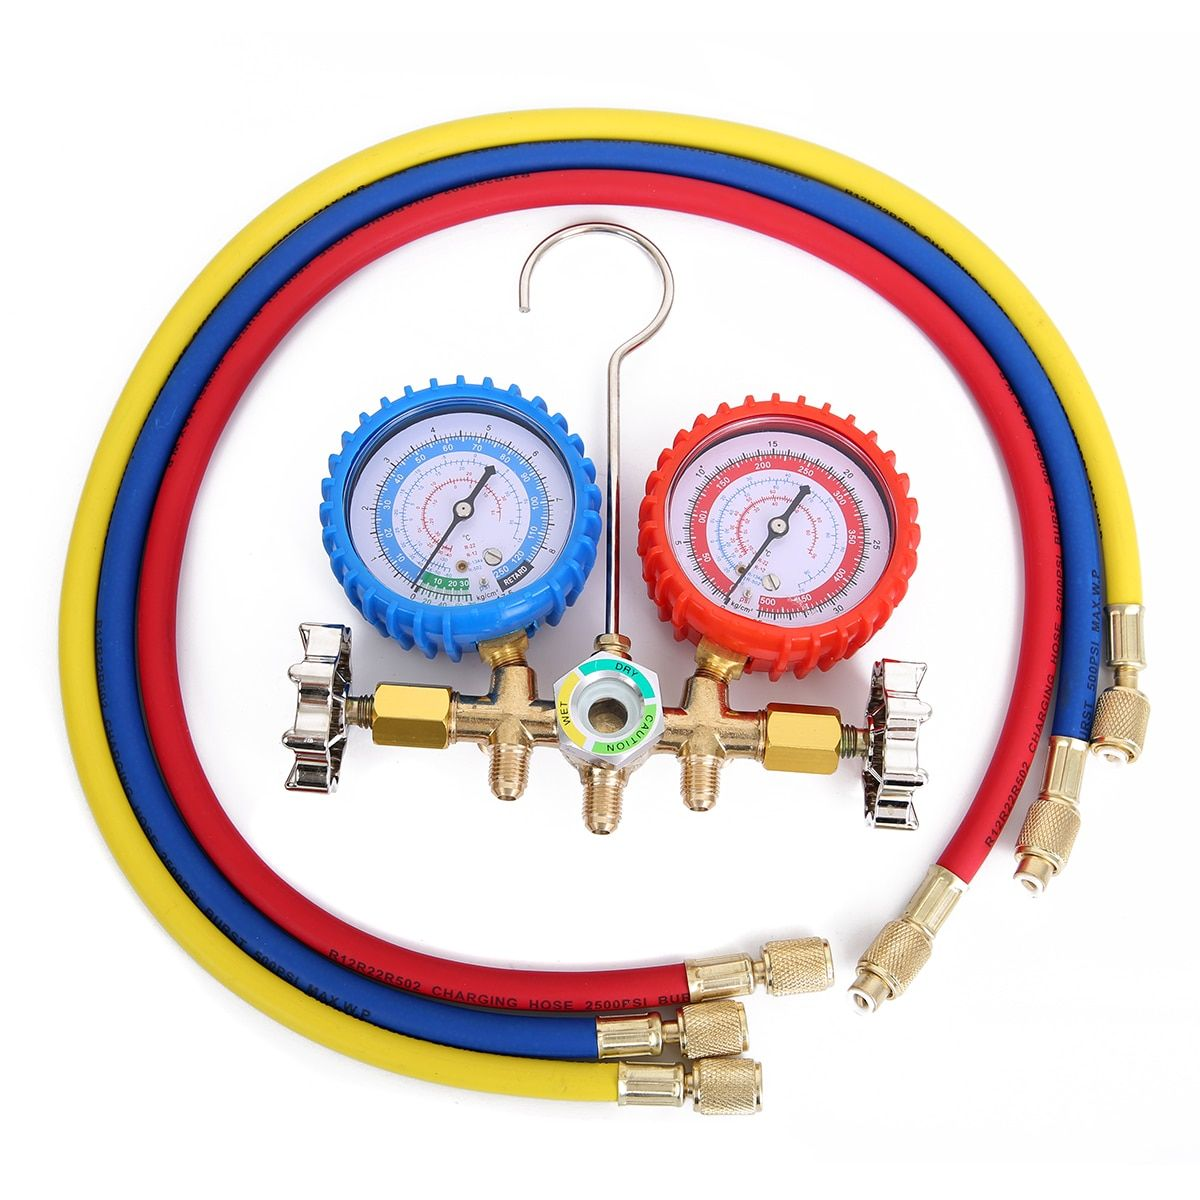 1pc Alloy Manifold Gauge Durable Pressure Gauges With Valve For Air Condition Refrigeration Maintenance